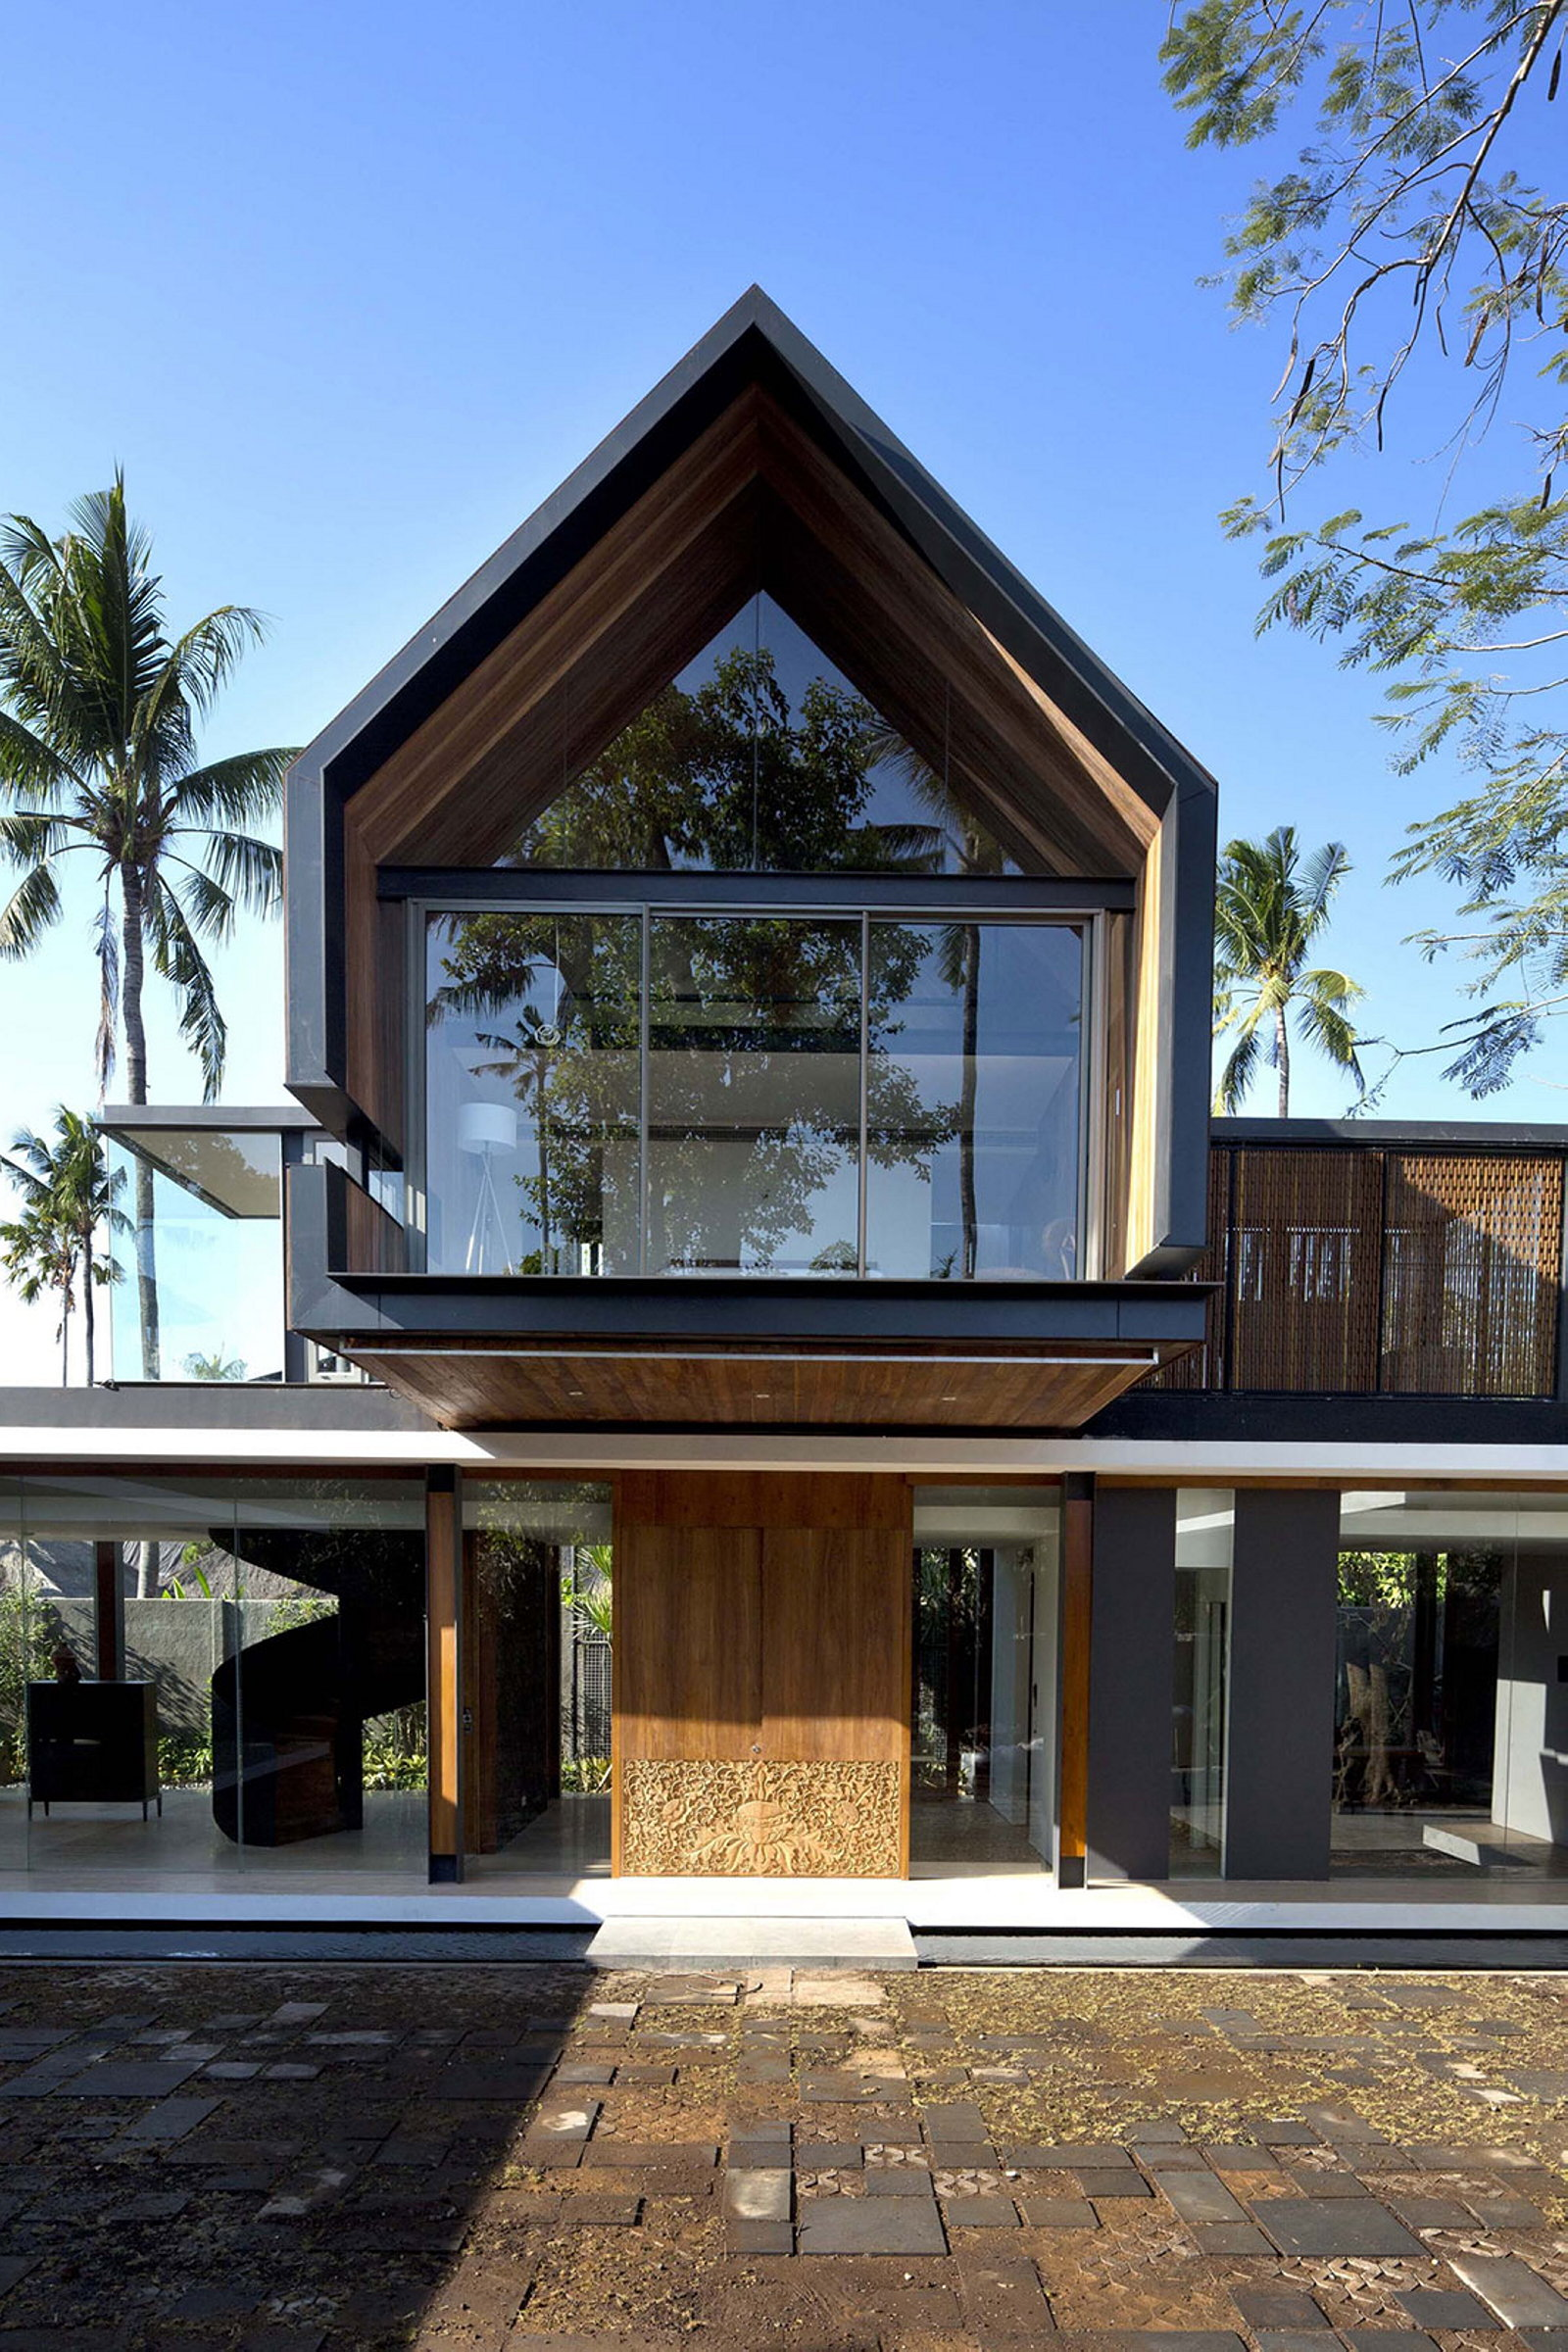 House design indonesia - The Sophisticated And Elegant Design Of The Svarga Residence In Bali Indonesia